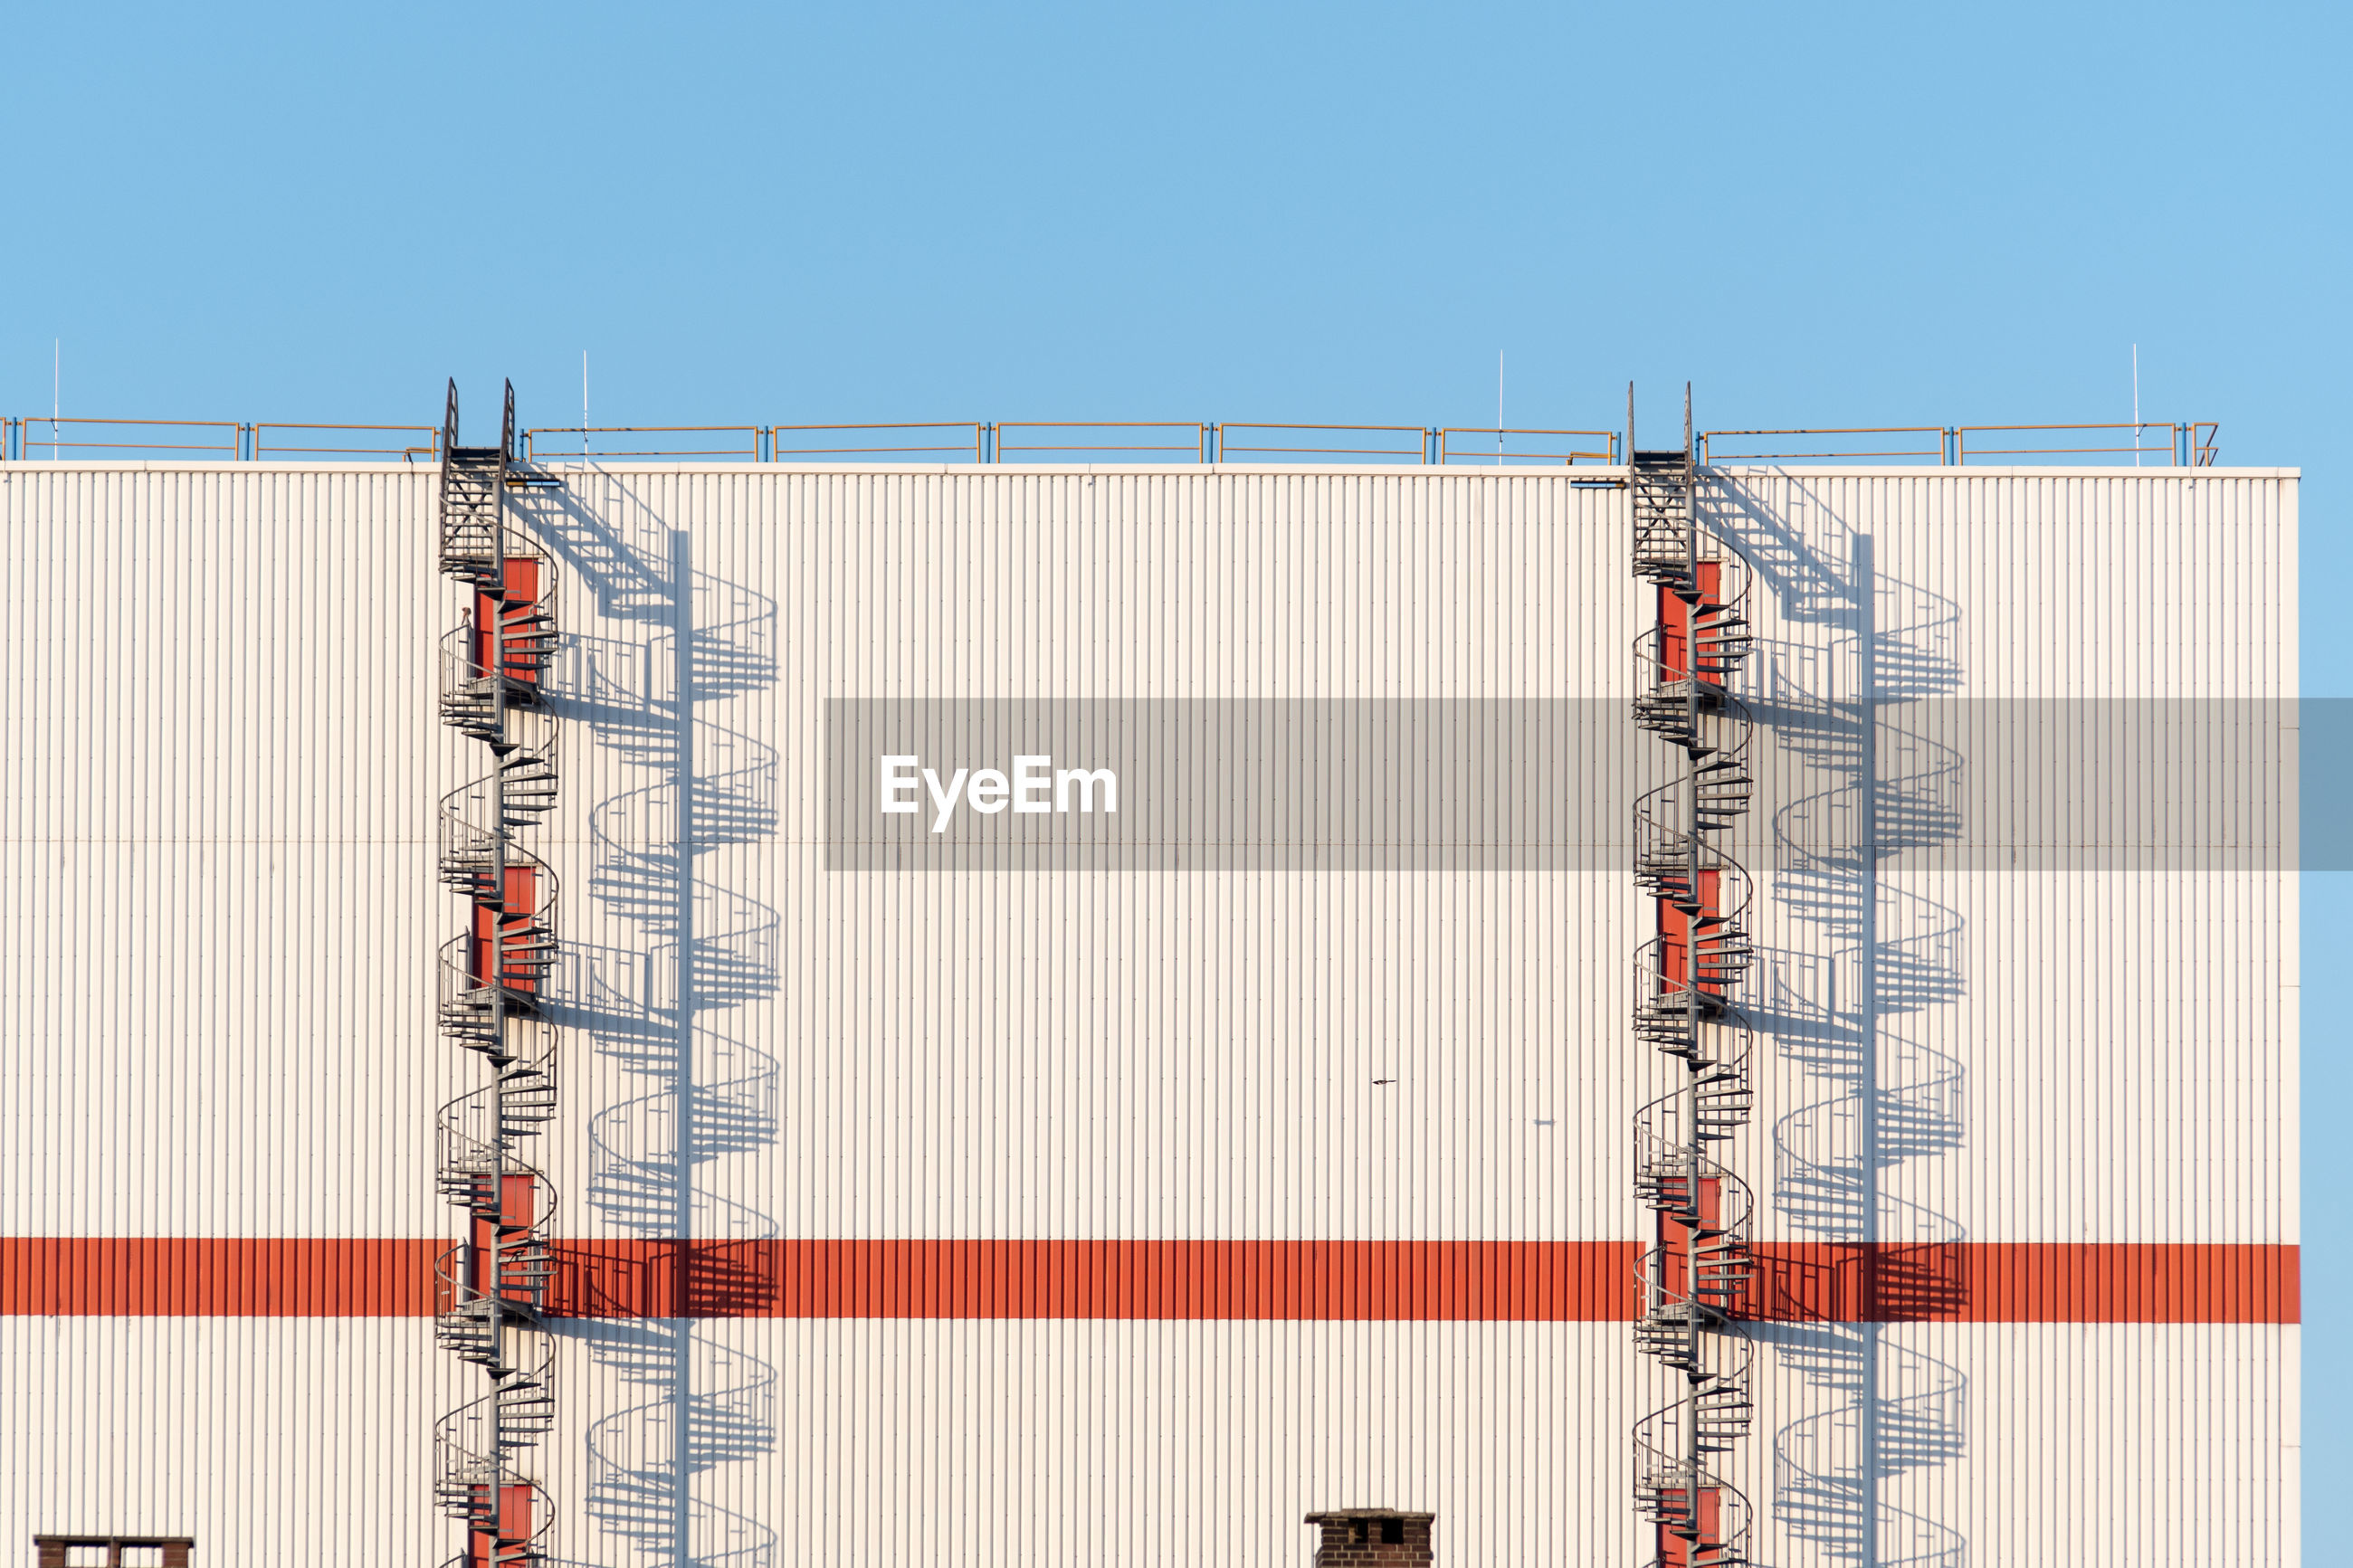 Fire escape on metallic structure against clear blue sky